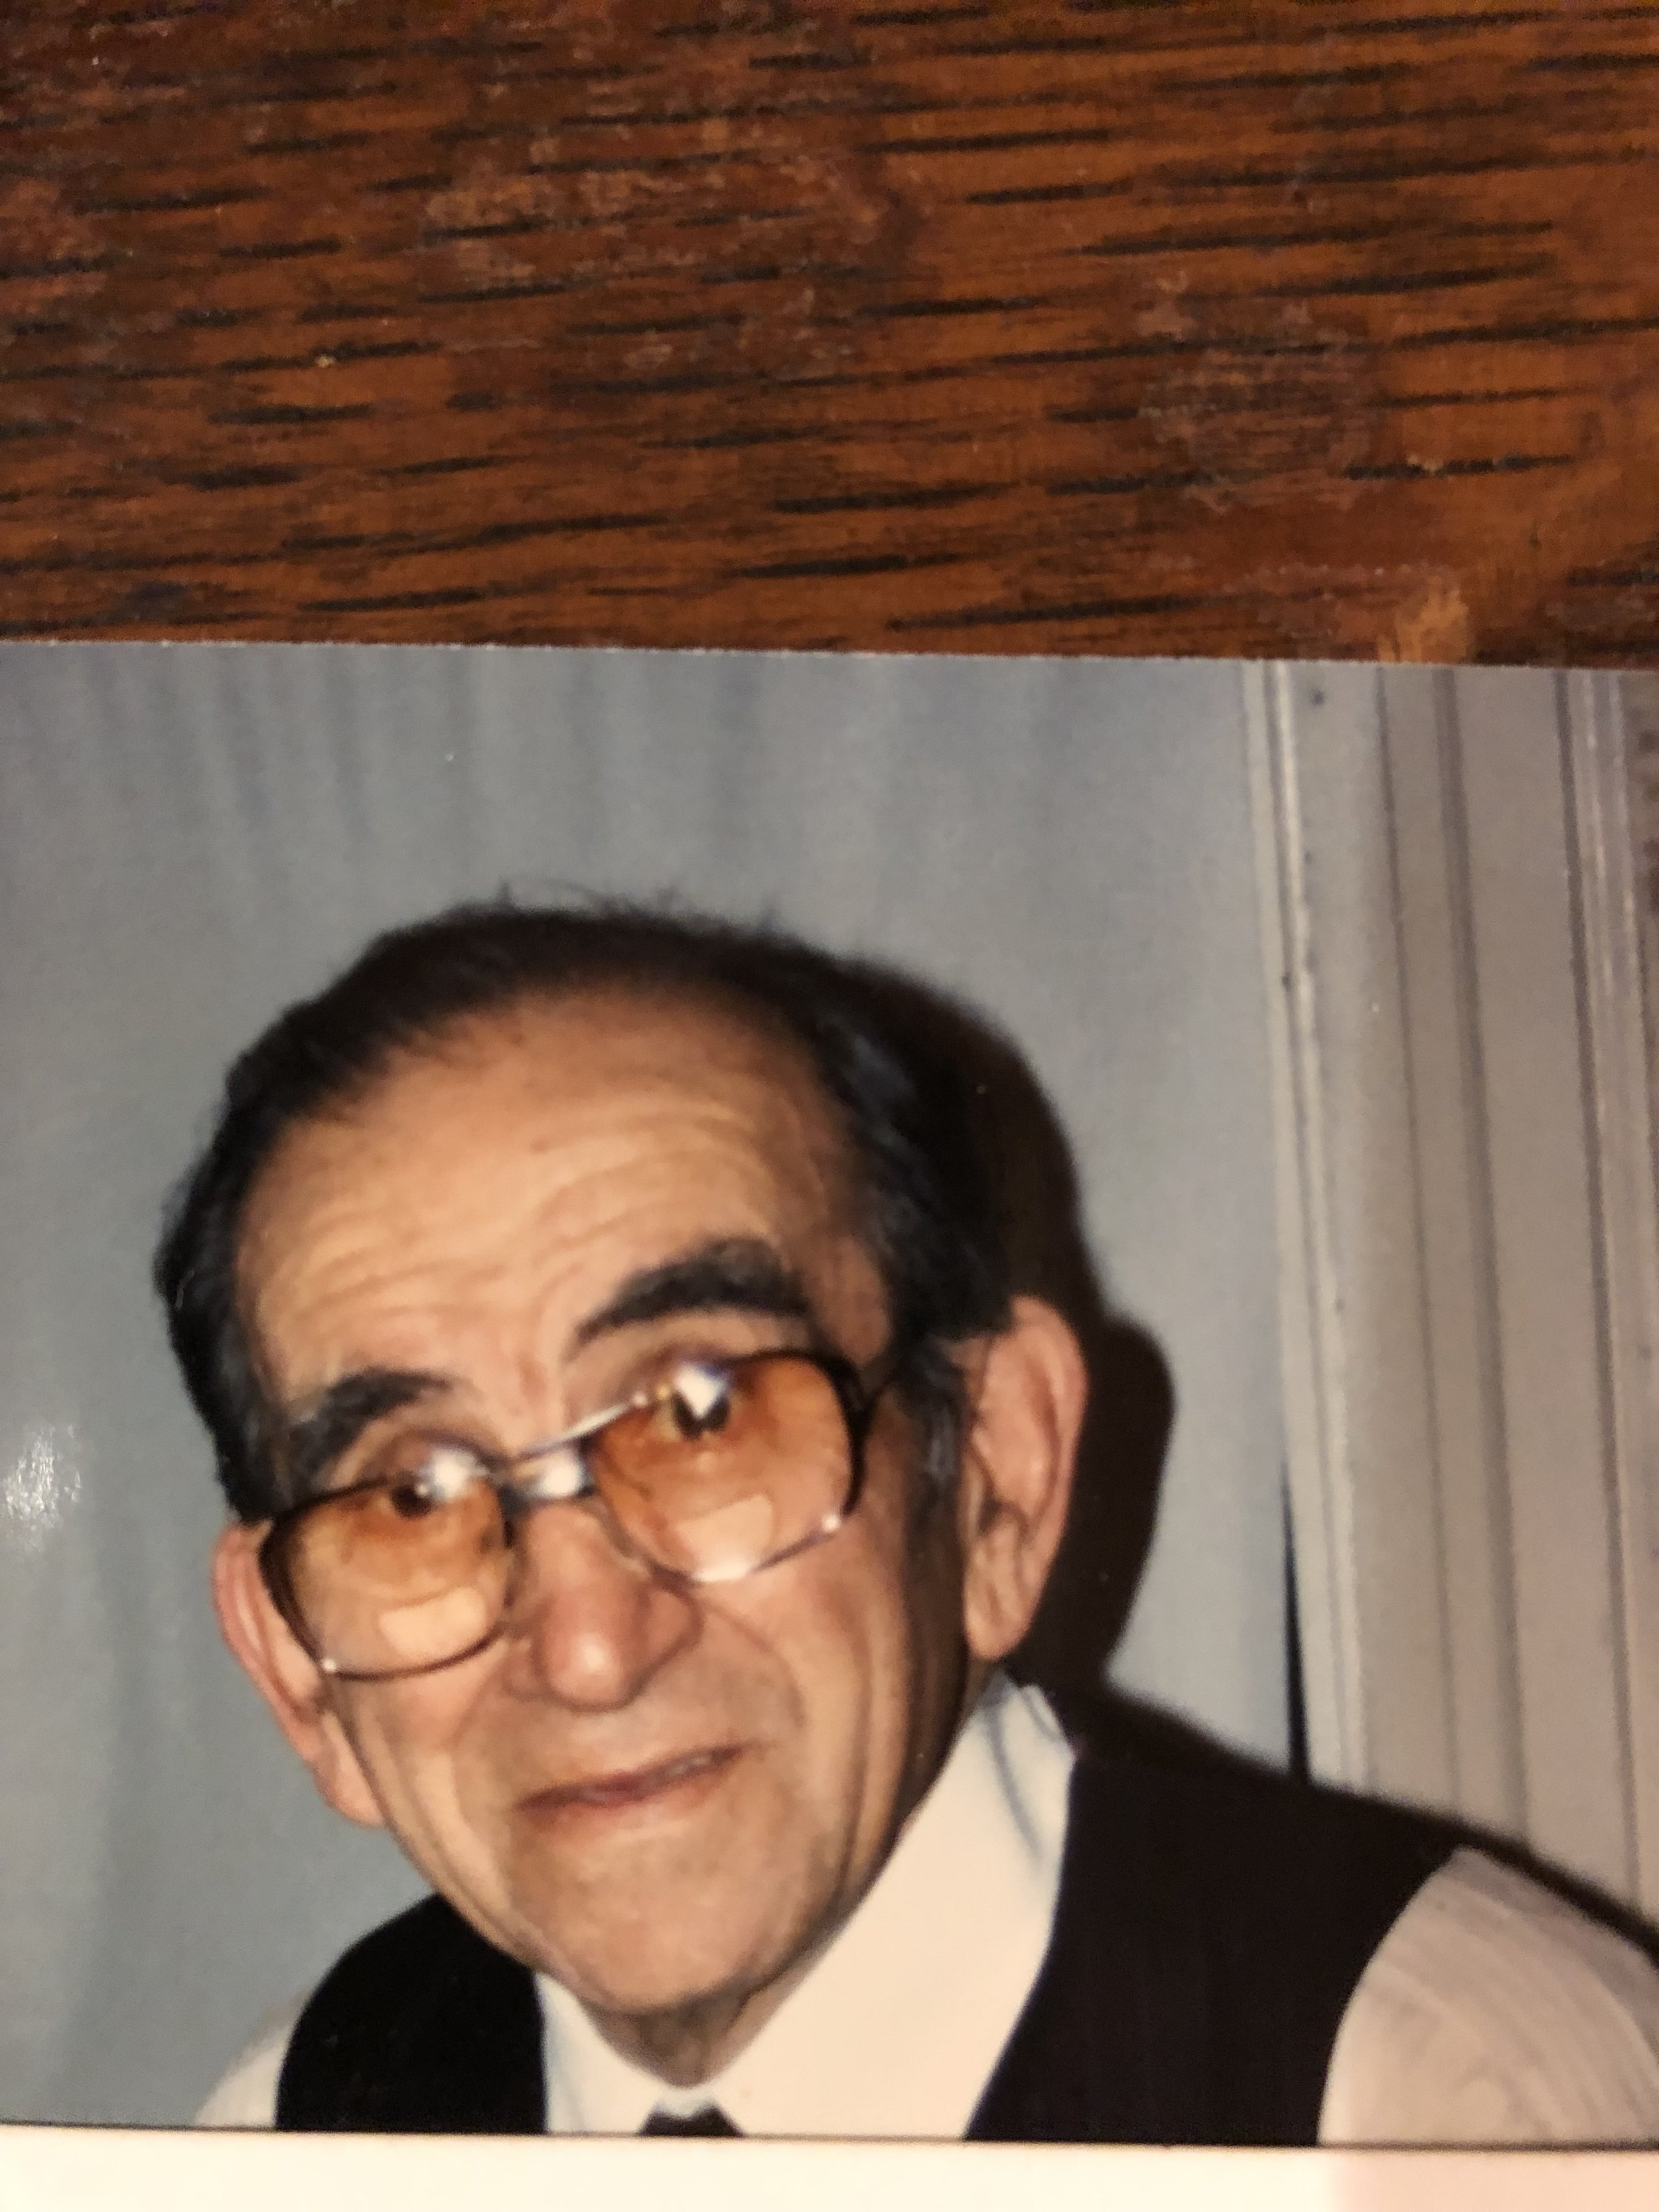 My father, Benjamin Mark, February 1991 (age 80). He passed away on August 26, 1997.